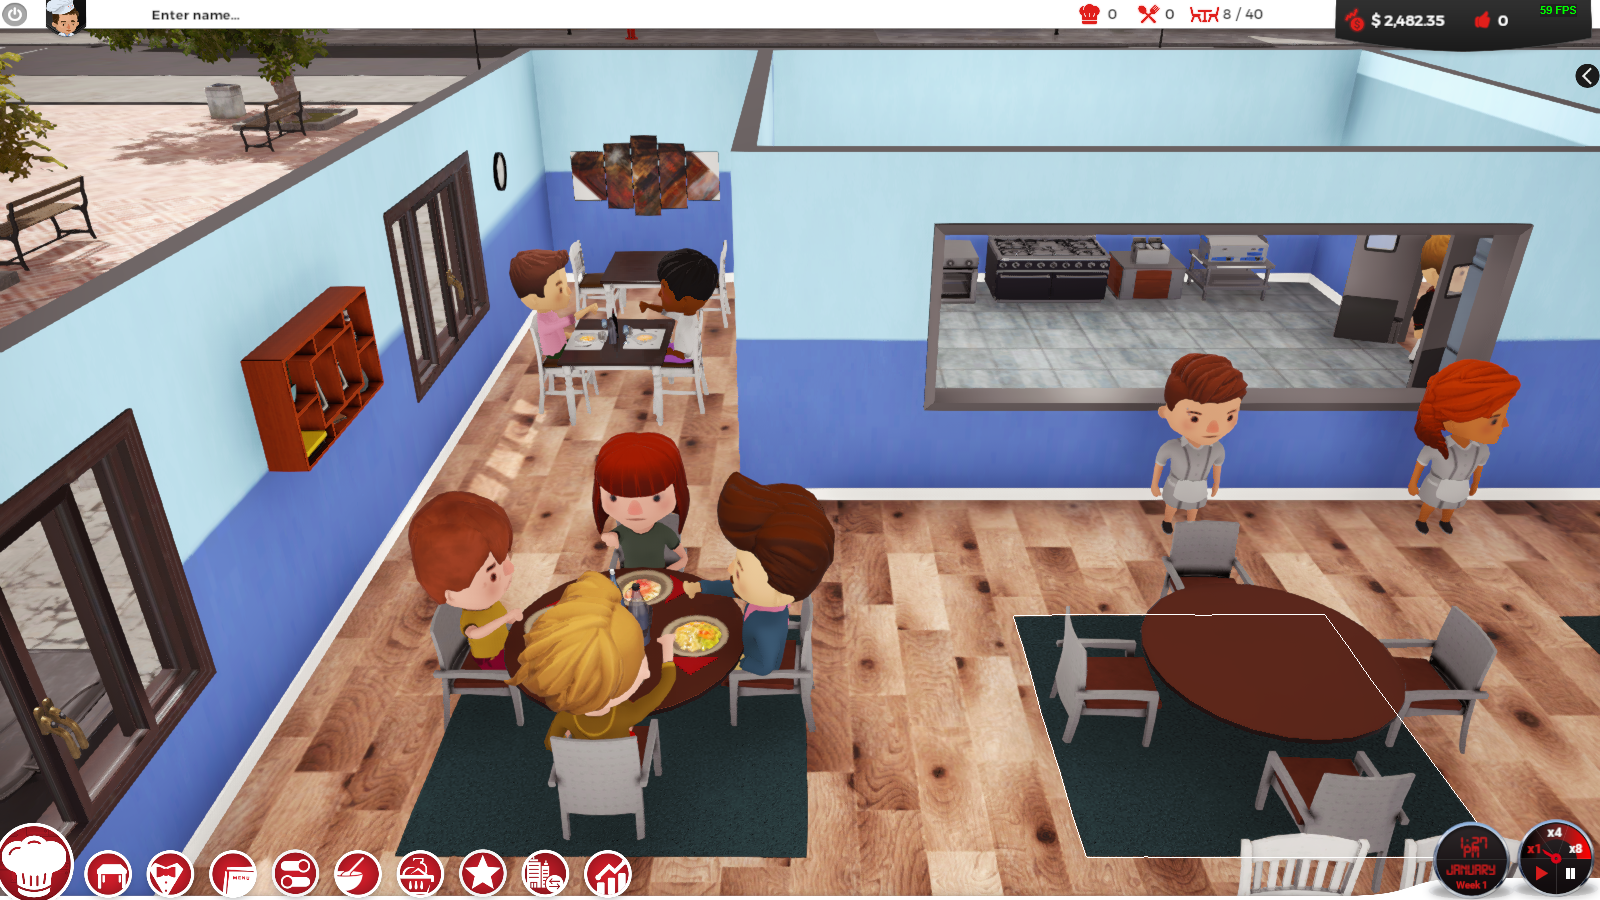 Early Access Look: Chef a Restaurant Tycoon - Gideon's Gaming